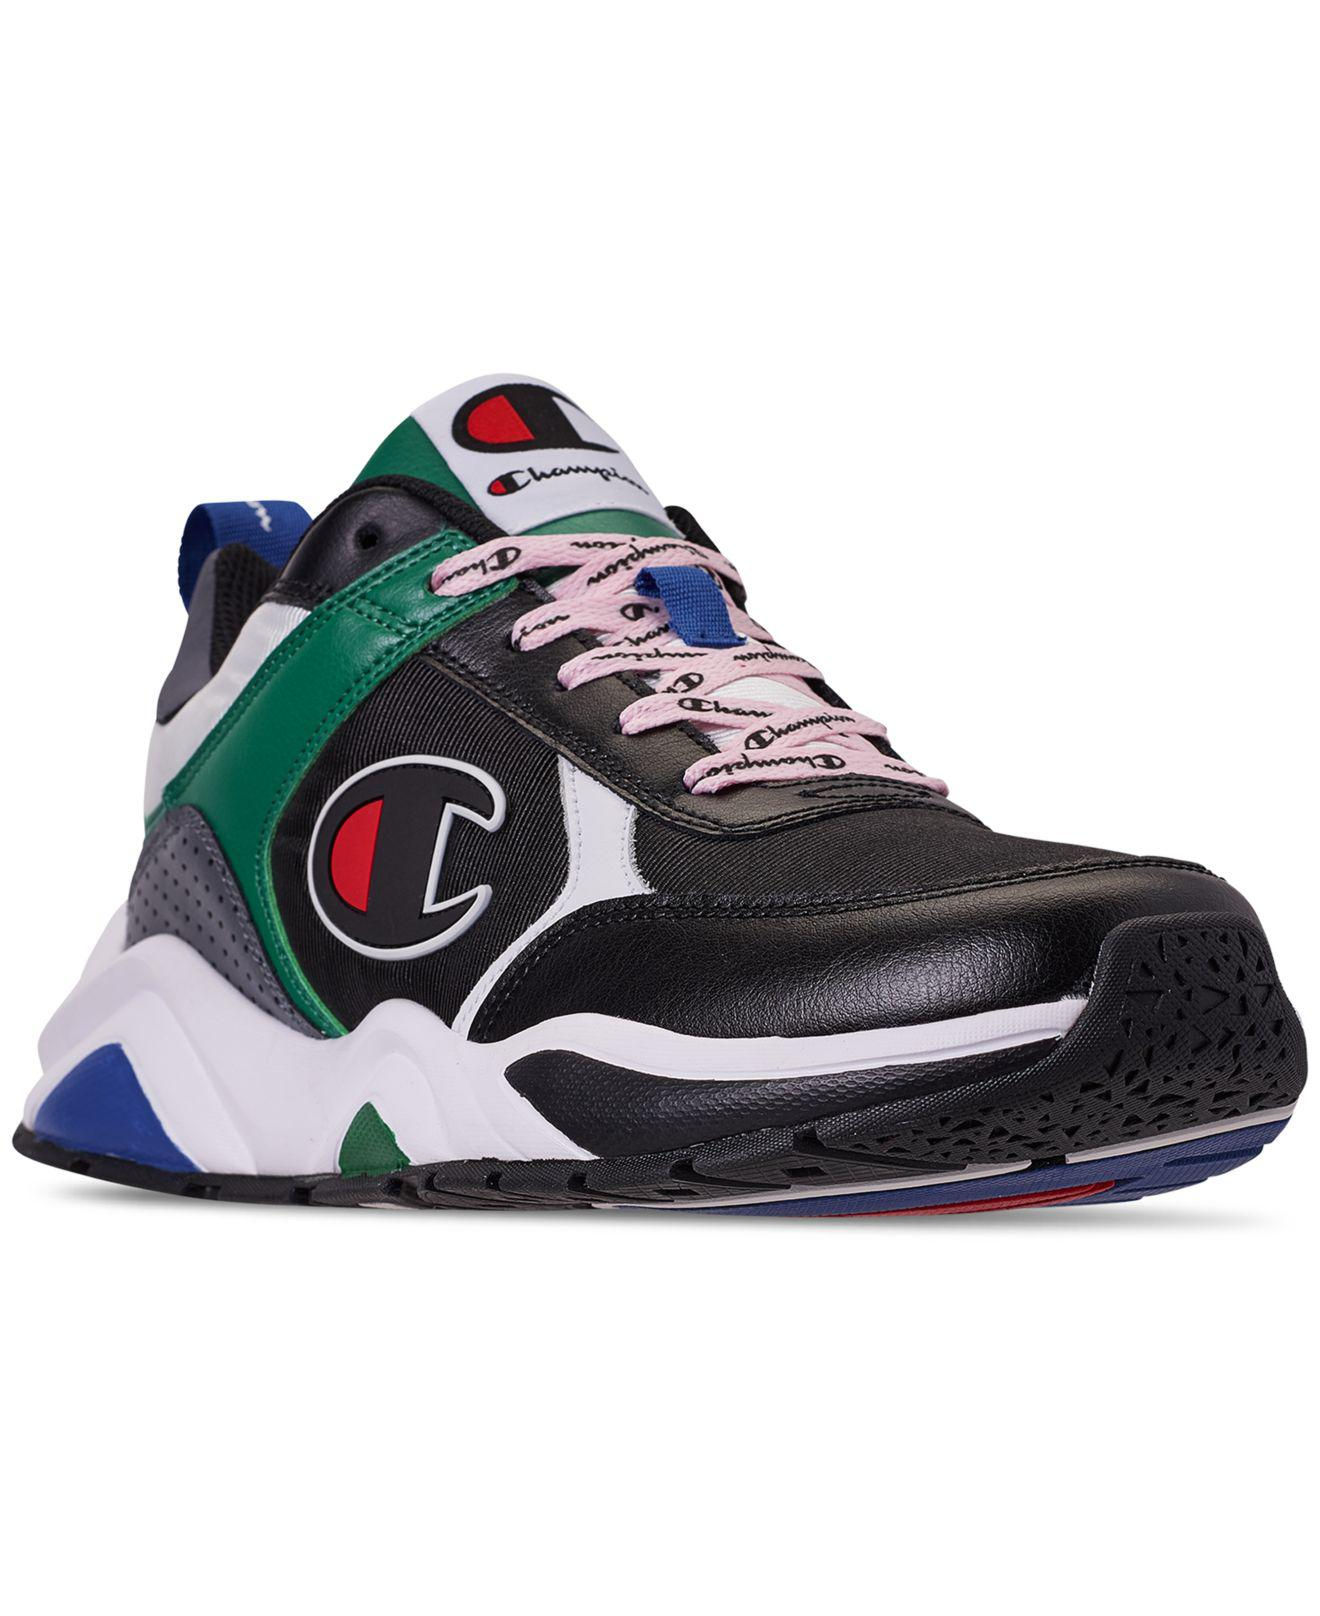 1f0287cf042 Champion - Black 93eighteen Casual Sneakers From Finish Line for Men -  Lyst. View fullscreen